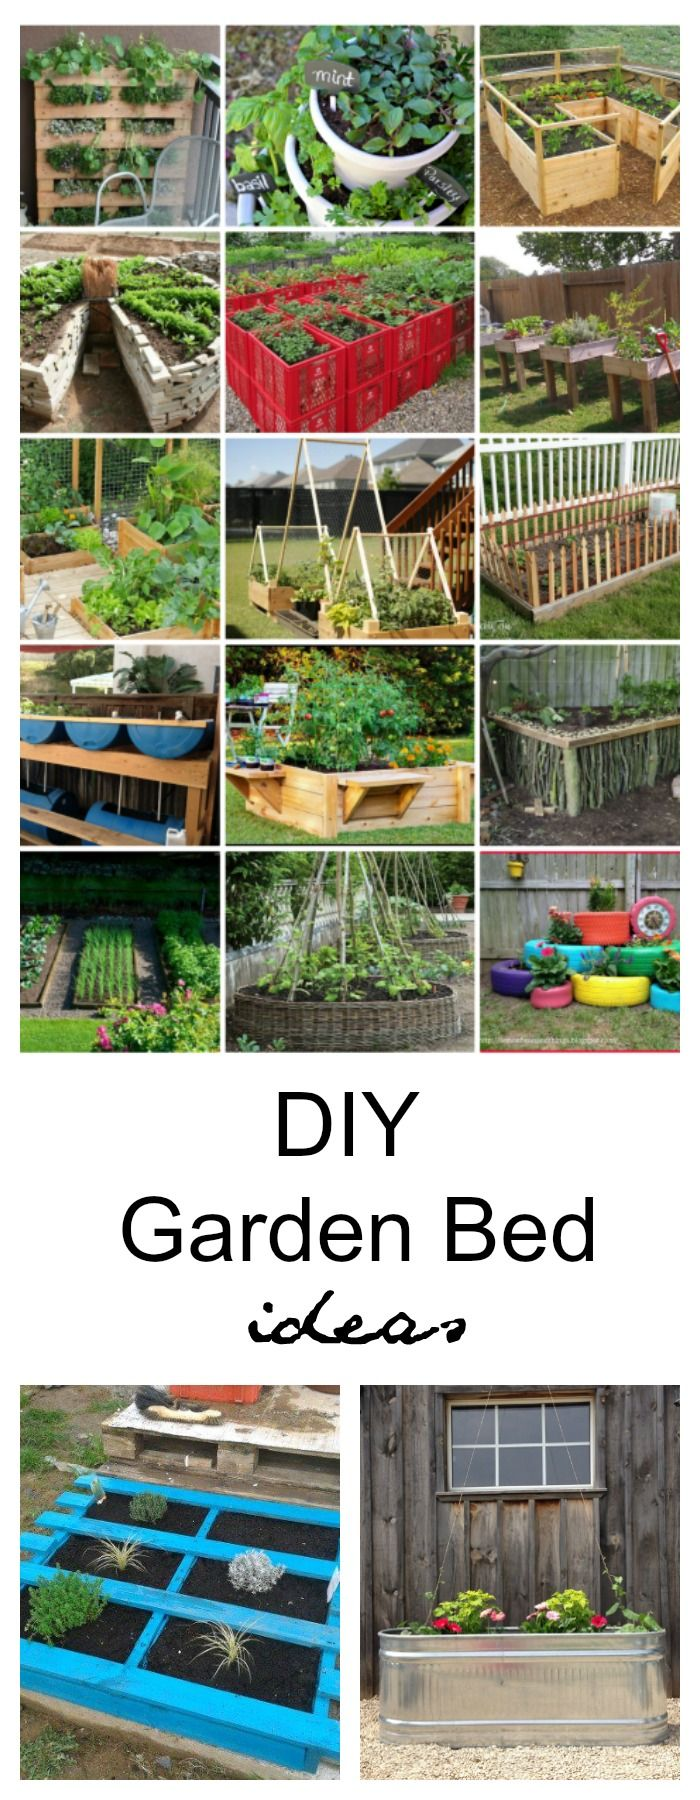 Garden Ideas| Depending upon your space, style, and needs, I have rounded up some DIY Garden Bed Ideas that are sure to help inspire a design that is best for you.